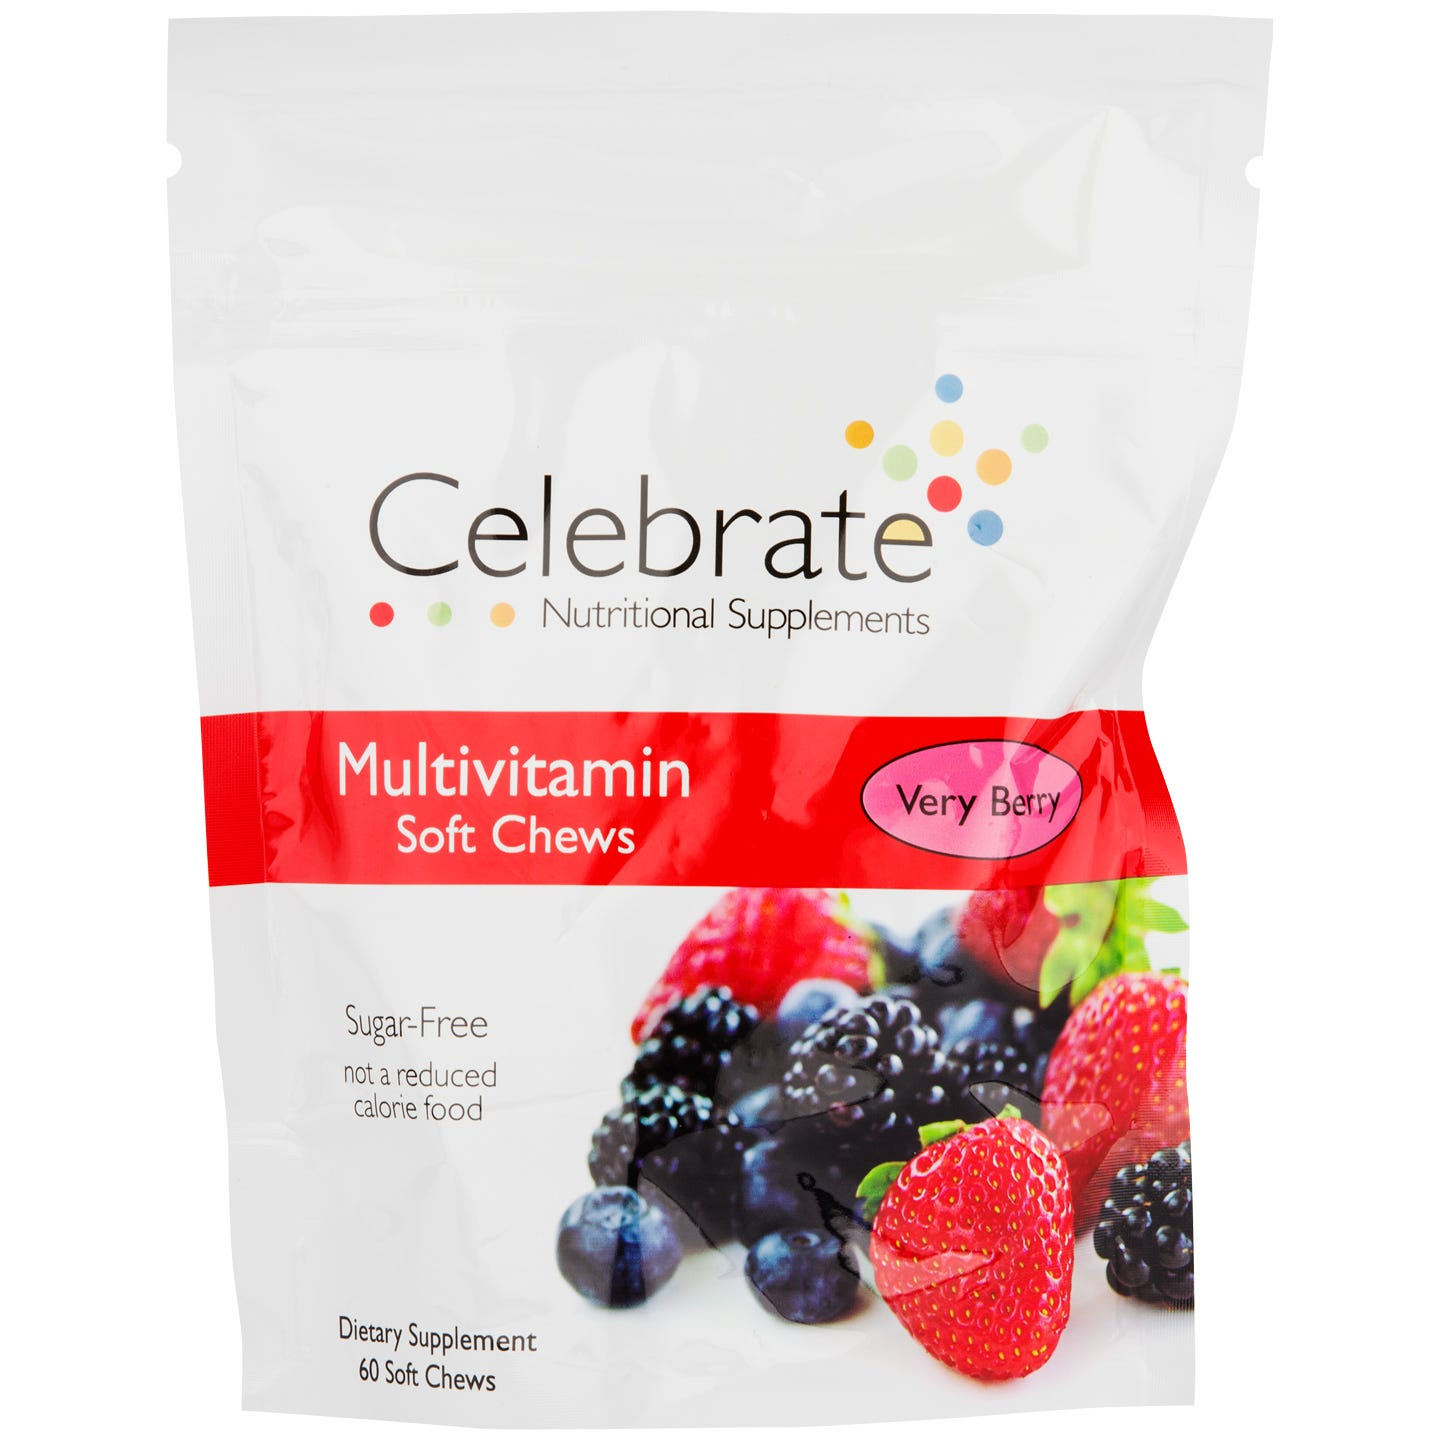 Multivitamin Soft Chews Very Berry (60 Chews) - Celebrate - Rapid Diet Weight Loss Products Shop